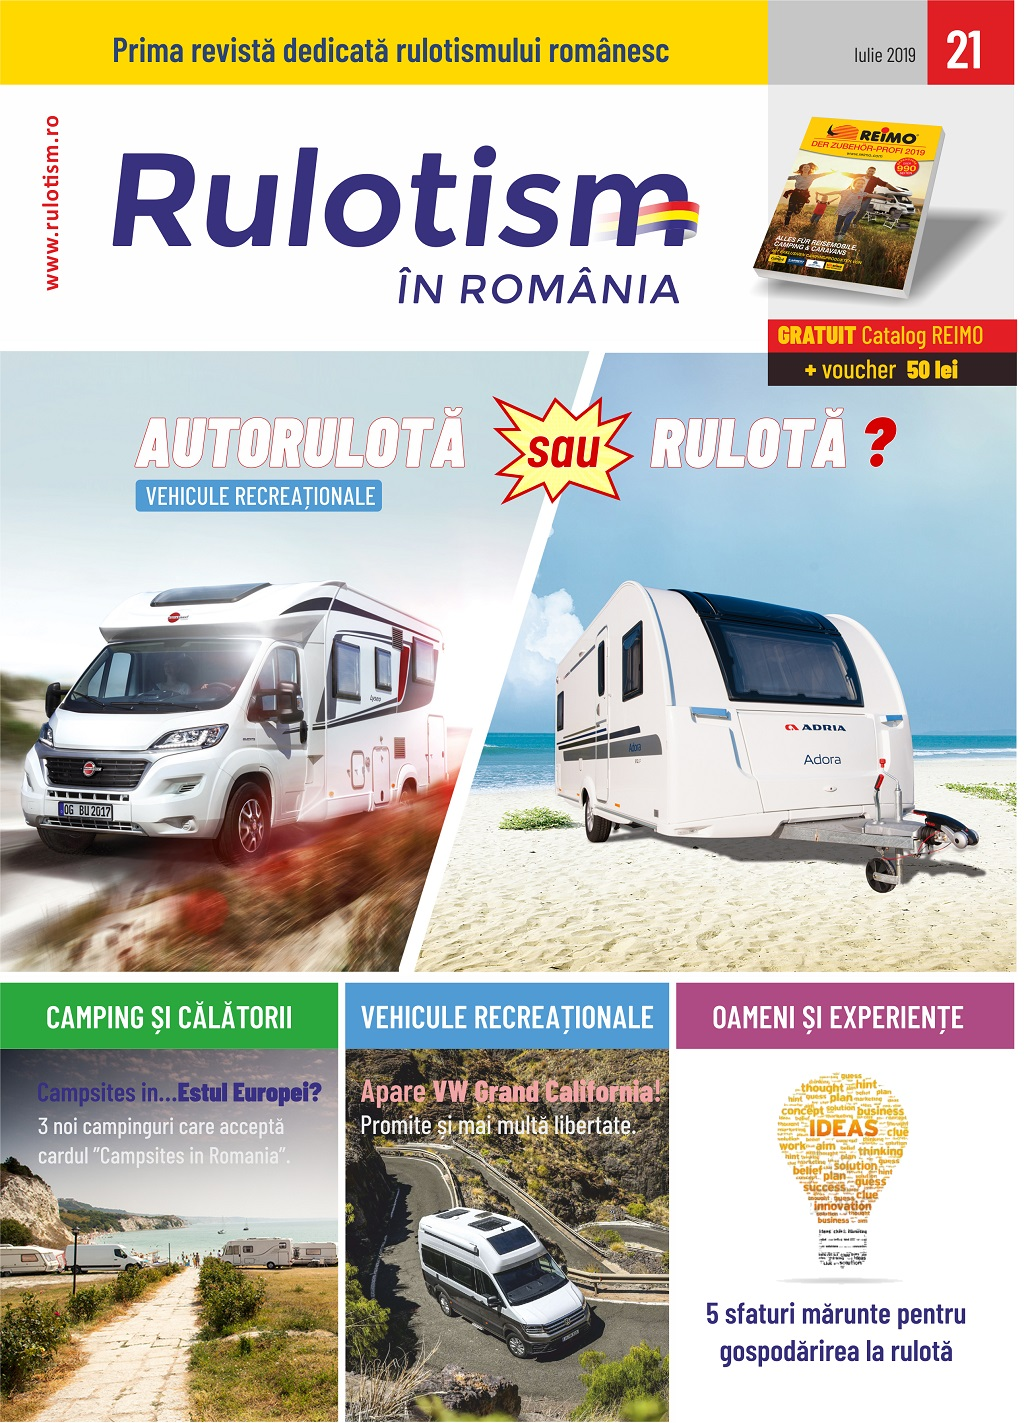 Revista Rulotism in Romania